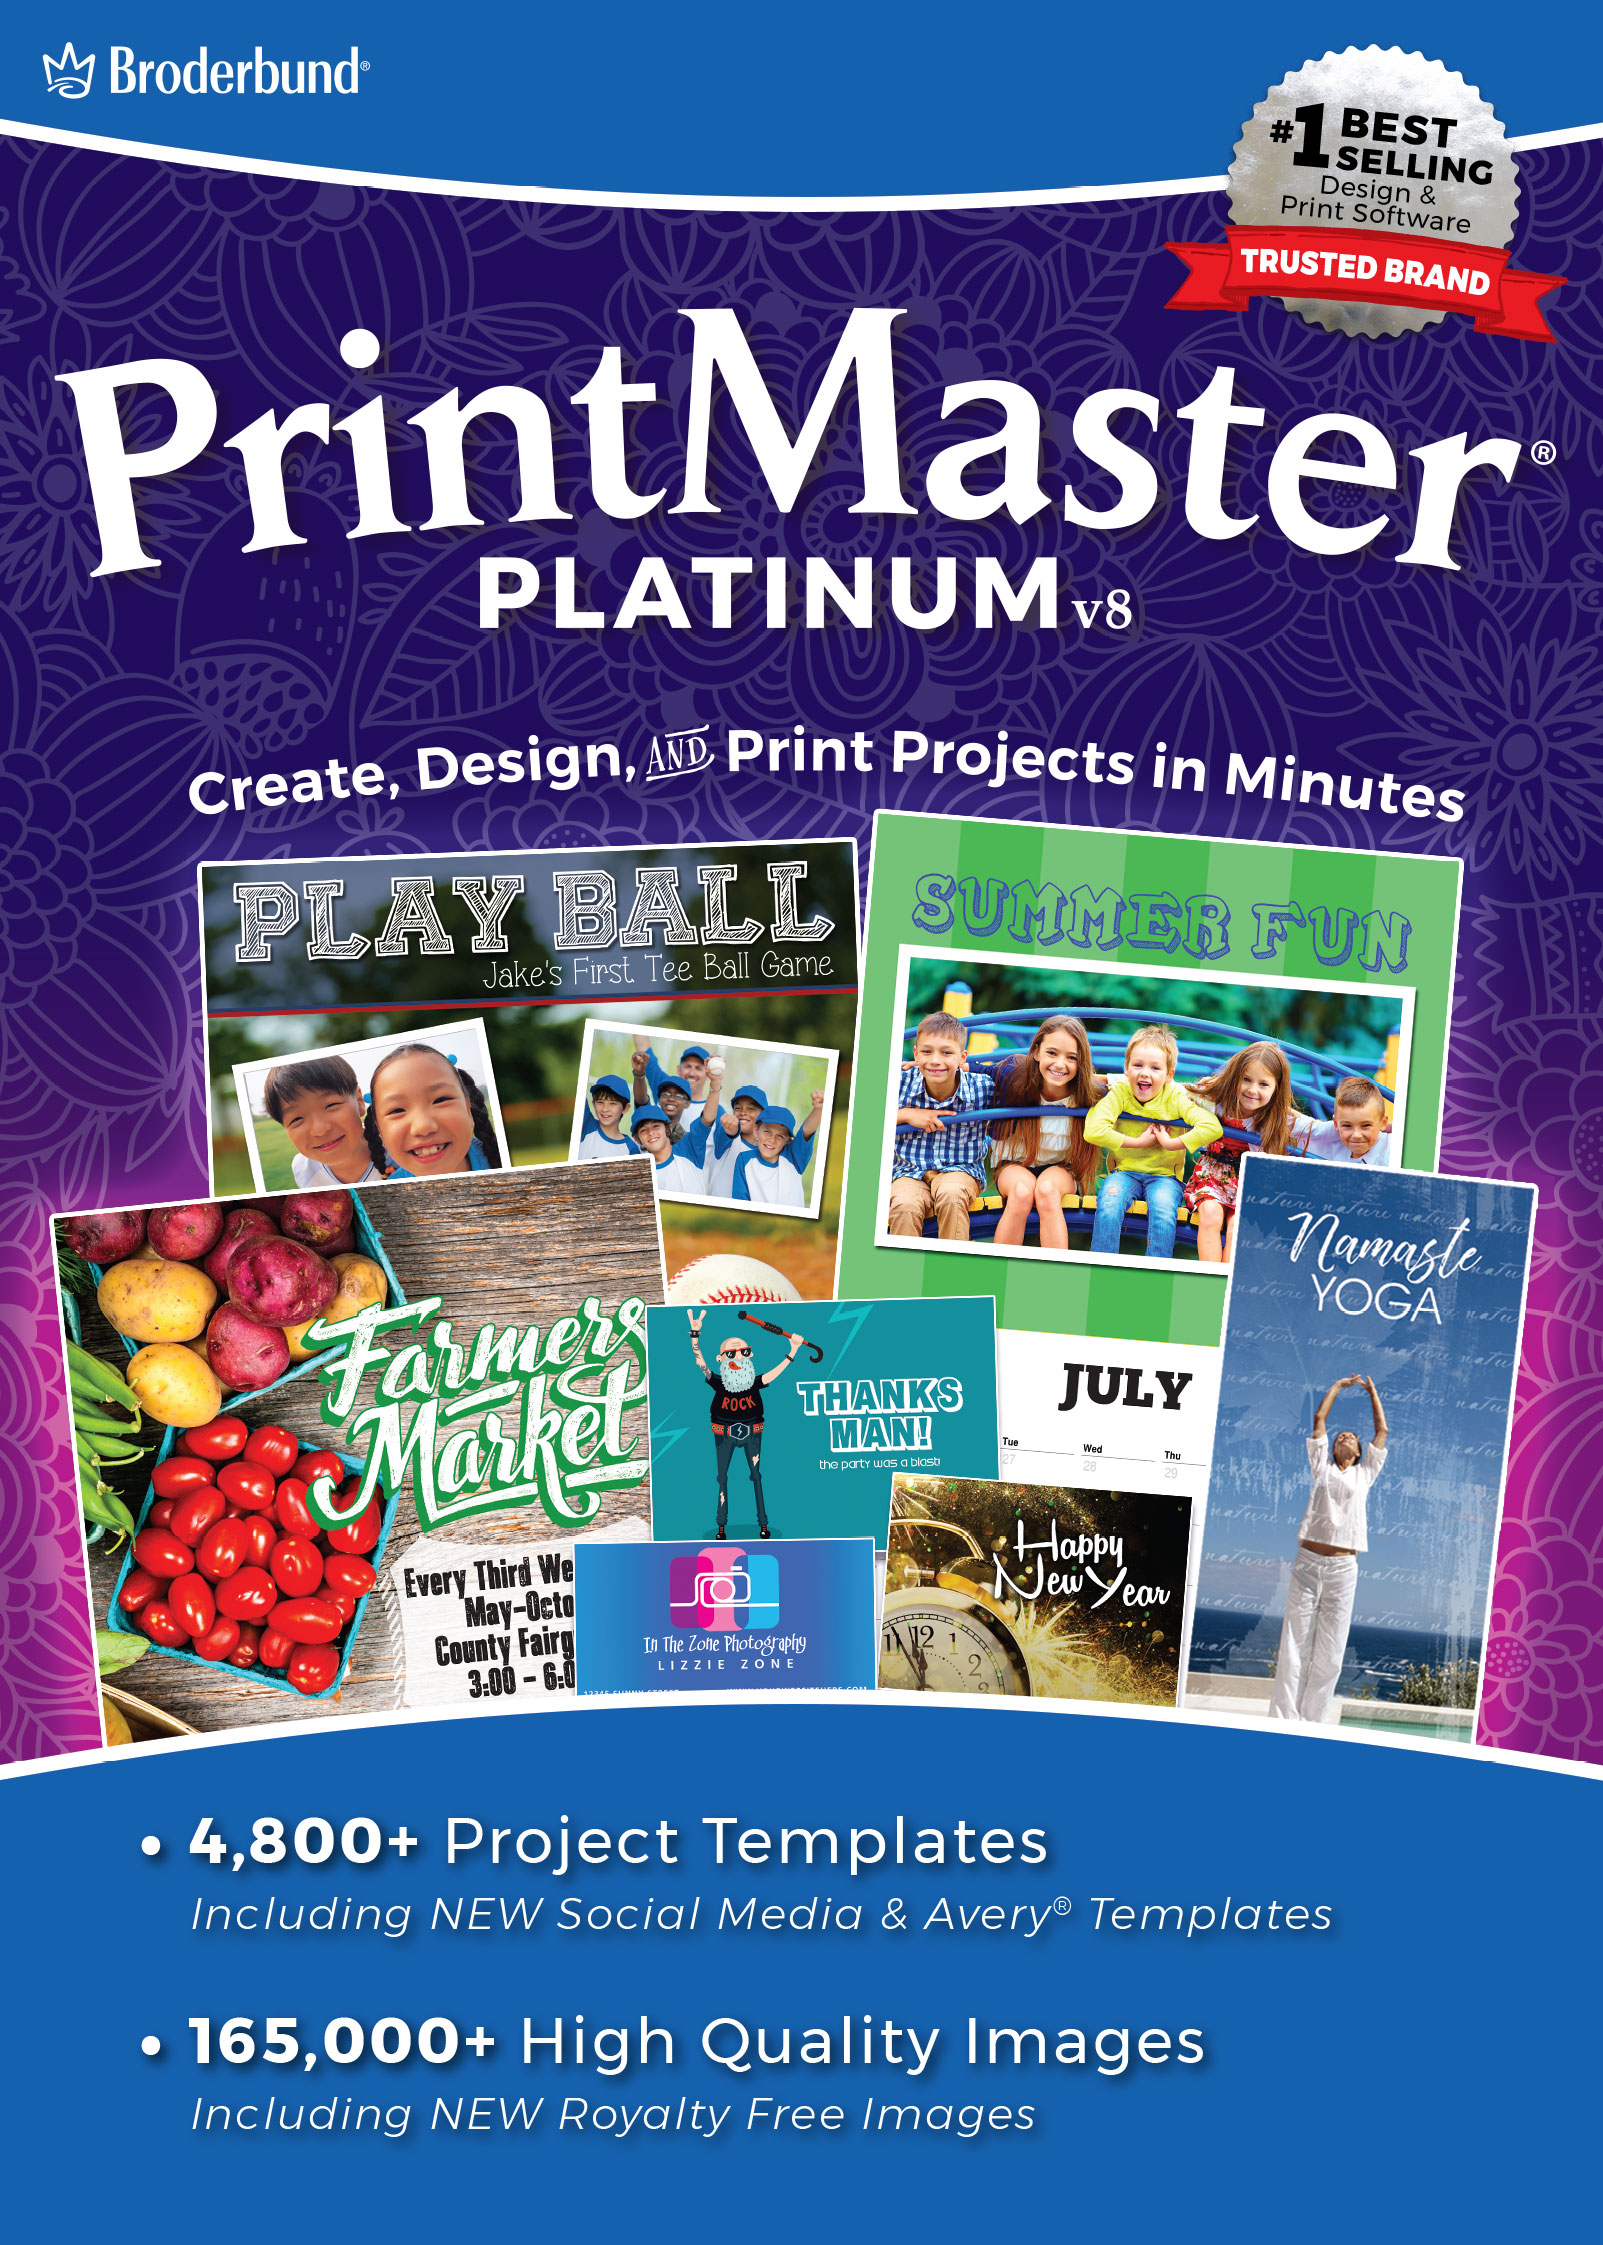 PrintMaster v8 Platinum for Mac- Design Software for At Home Print Projects [Download]